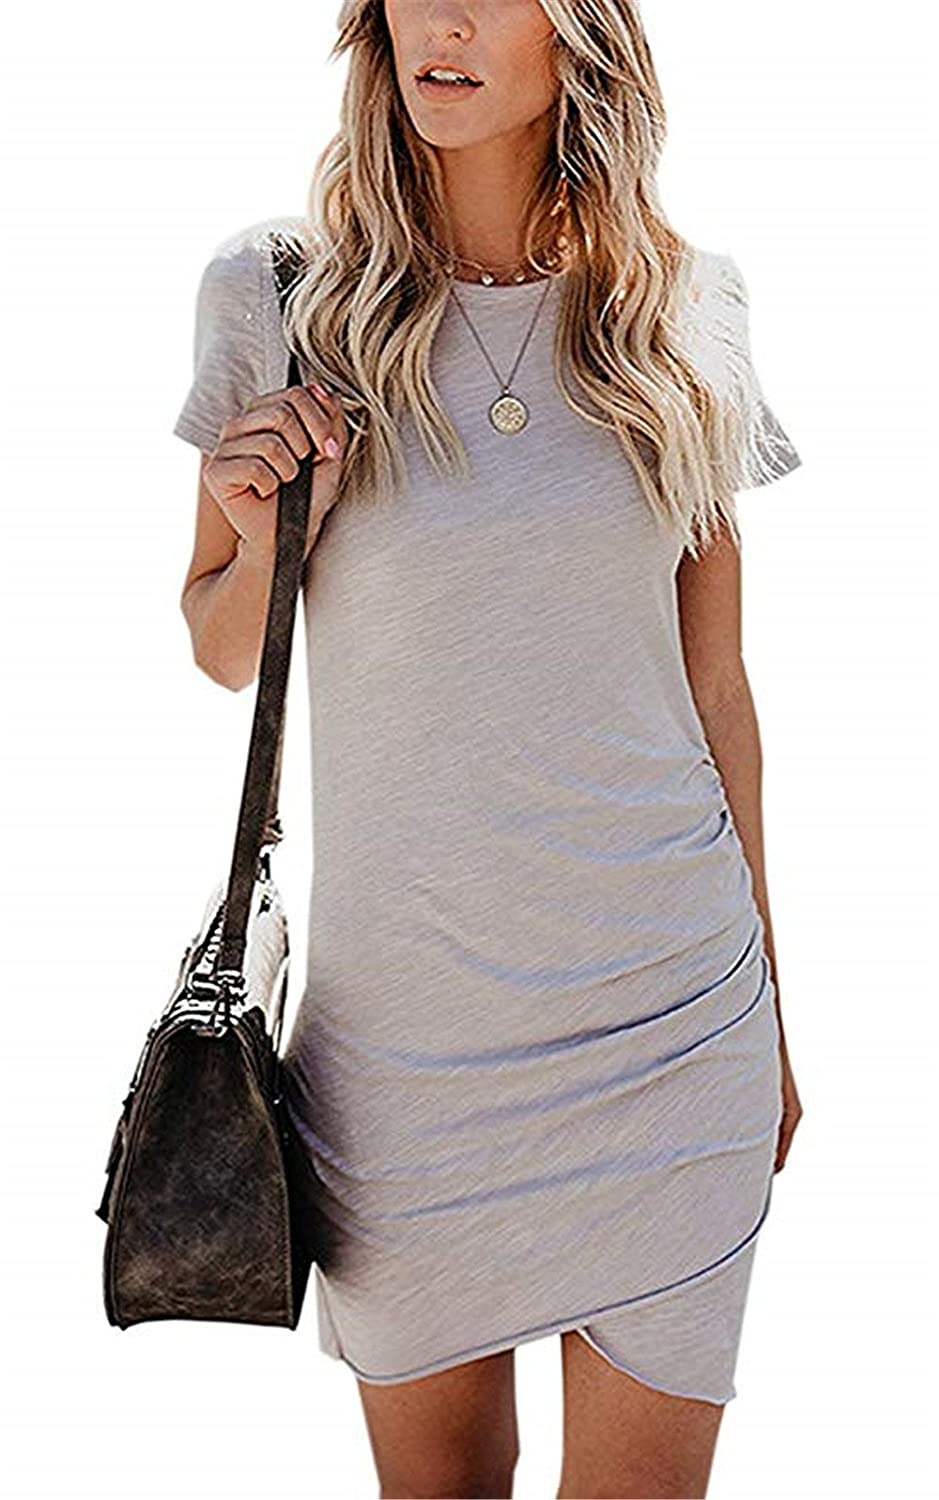 pabo store Women Short Sleeve Sheath Dress Irregular Hem Bodycon Mini Dress